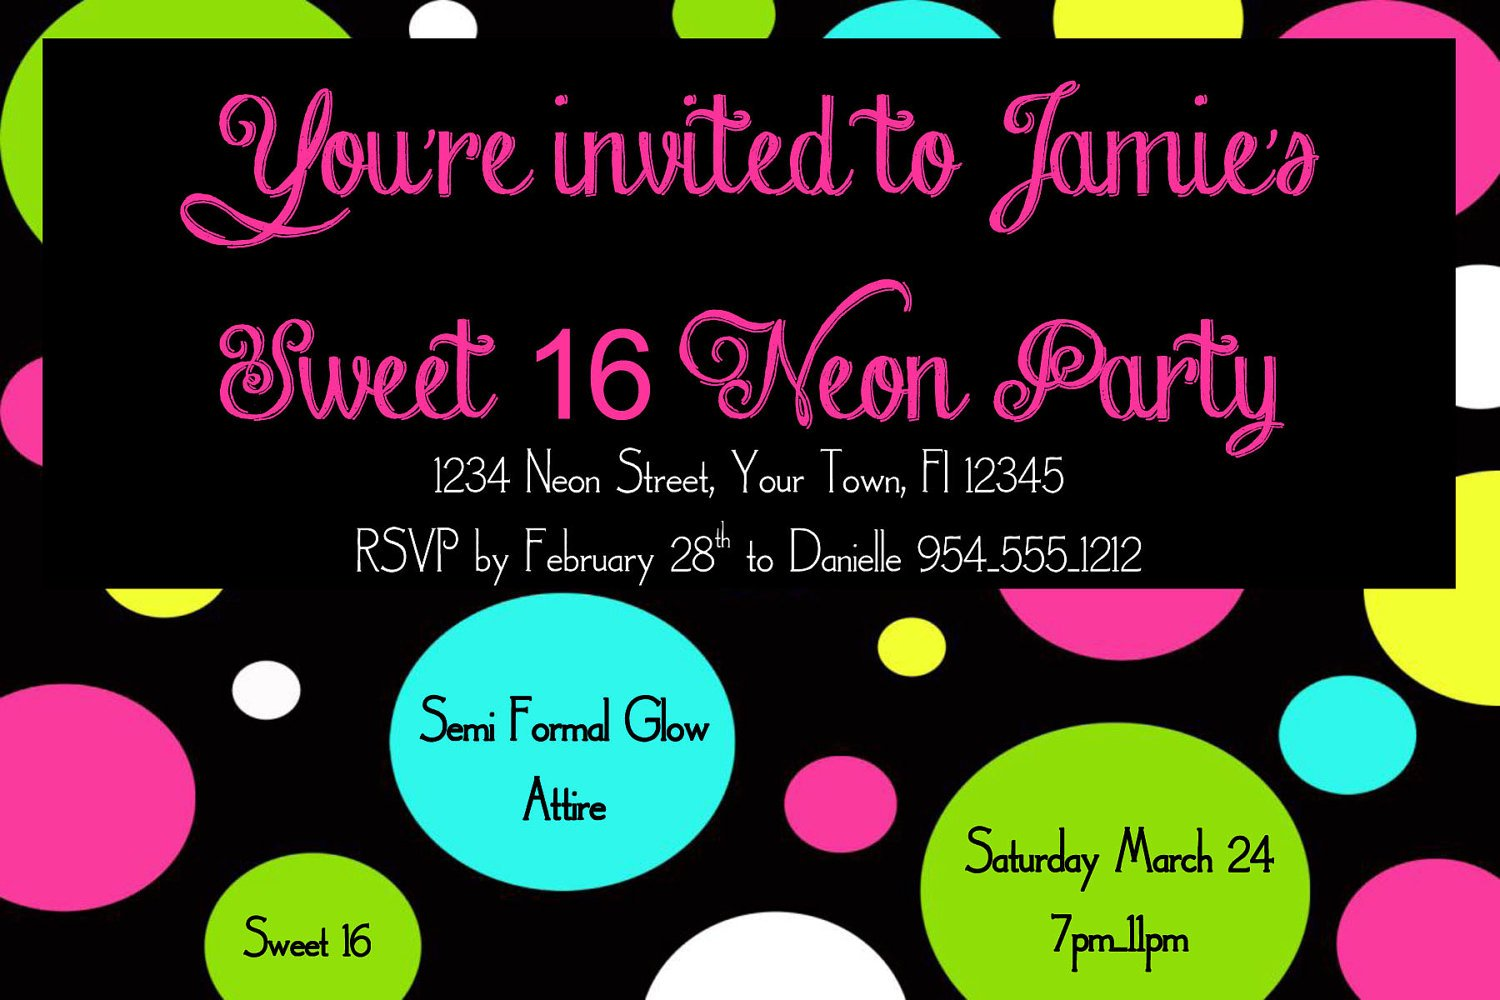 sweet birthday invitations templates invitations design neon sweet 16 birthday invitations templates